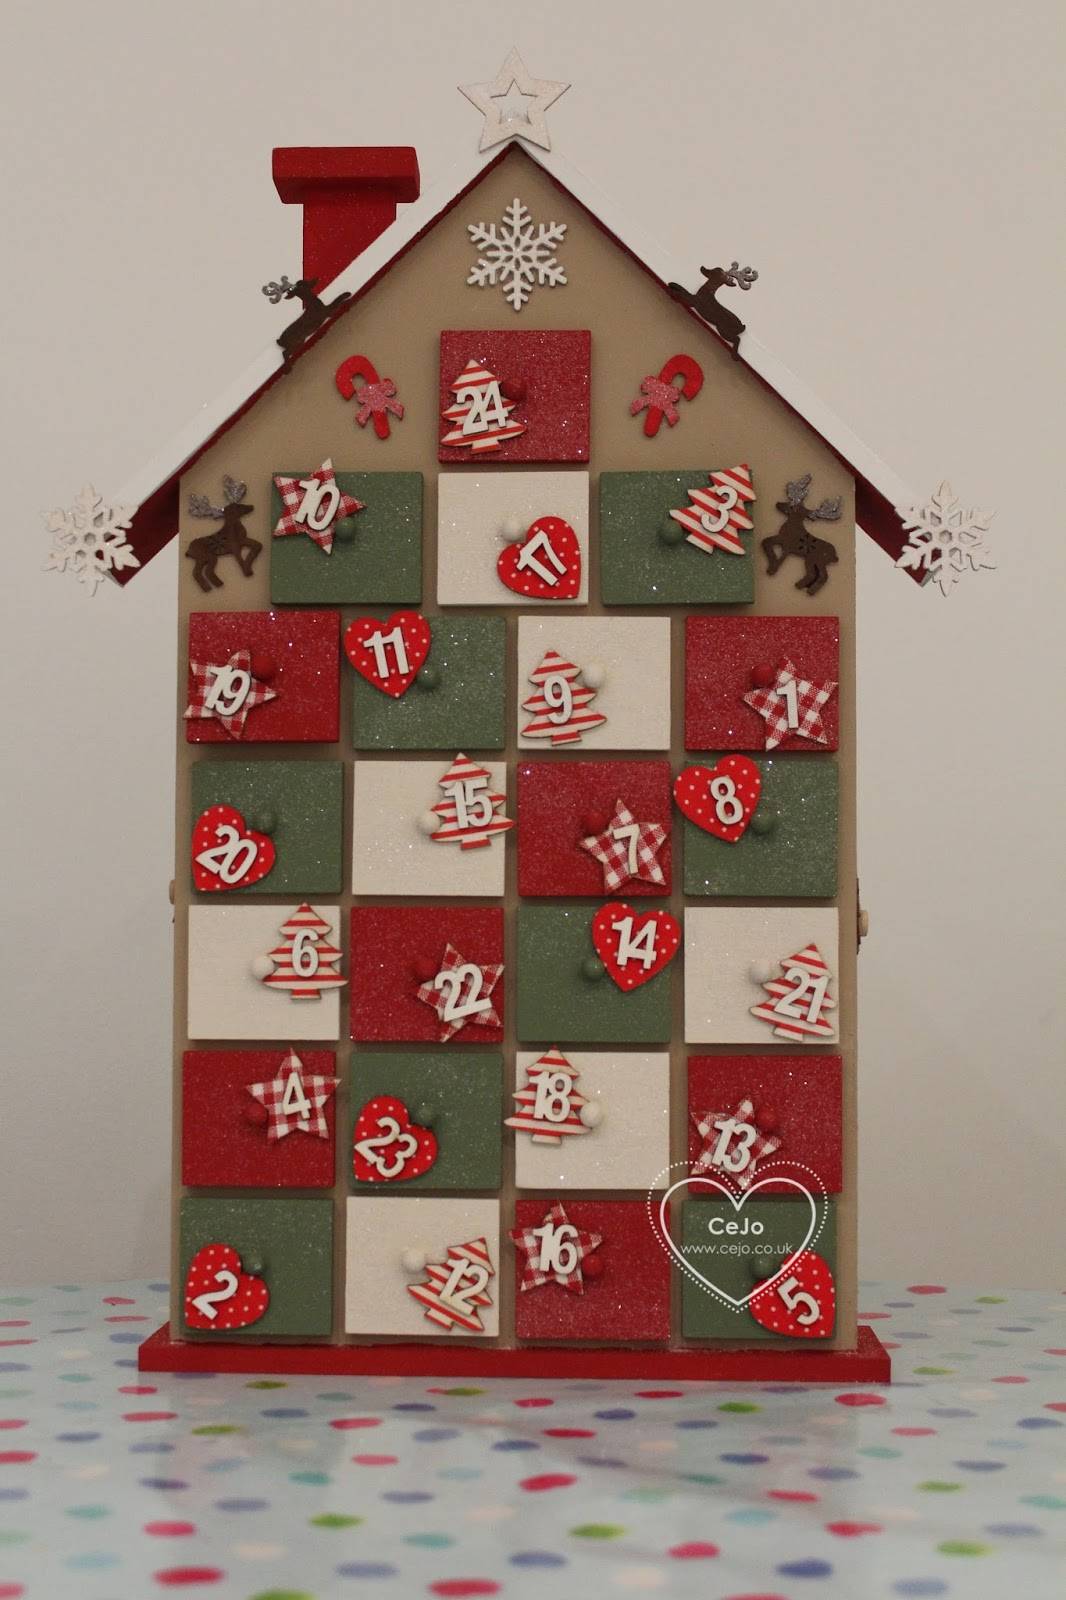 Advent Calendar House Diy : Things christmas diy advent calendar house cejo